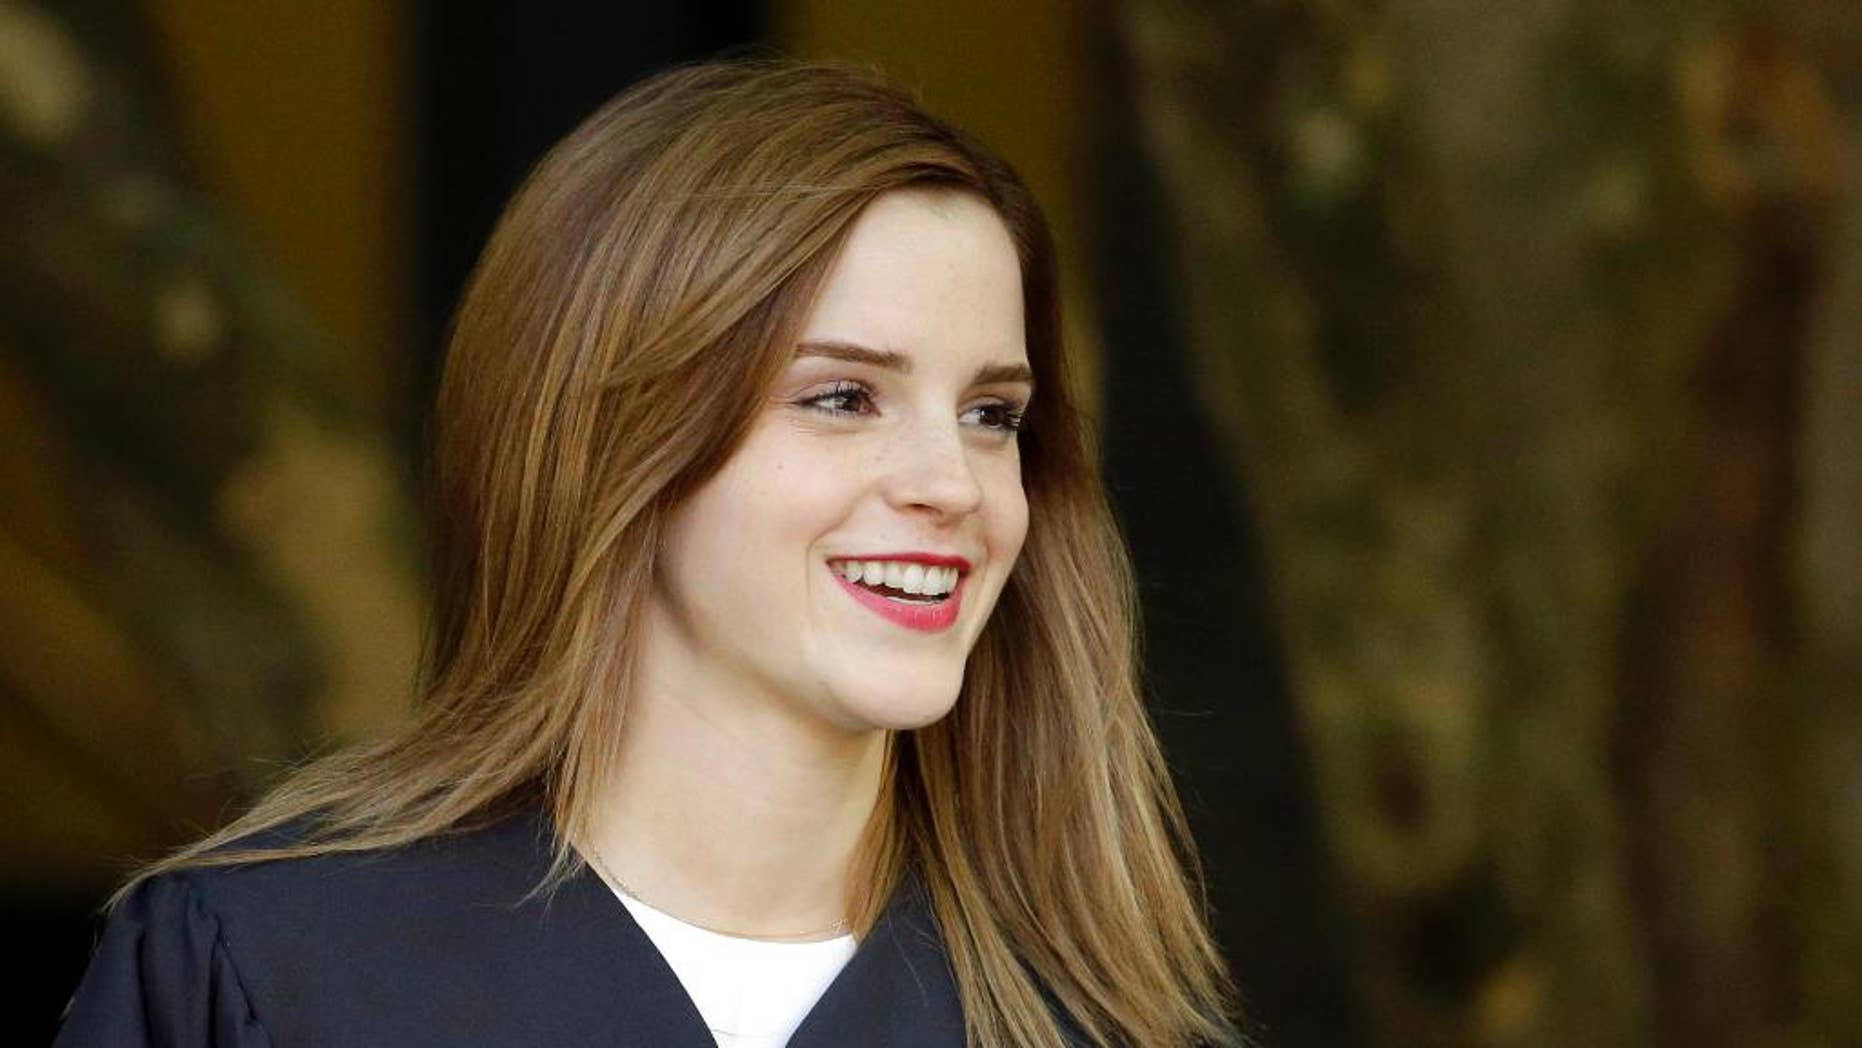 """Actress Emma Watson walks between buildings following commencement services on the campus of Brown University, Sunday, May 25, 2014, in Providence, R.I. The actress, best known for her role as Hermione Granger in the """"Harry Potter"""" movies, graduated with a bachelor's degree in English literature from the Ivy League university. (AP Photo/Steven Senne)"""